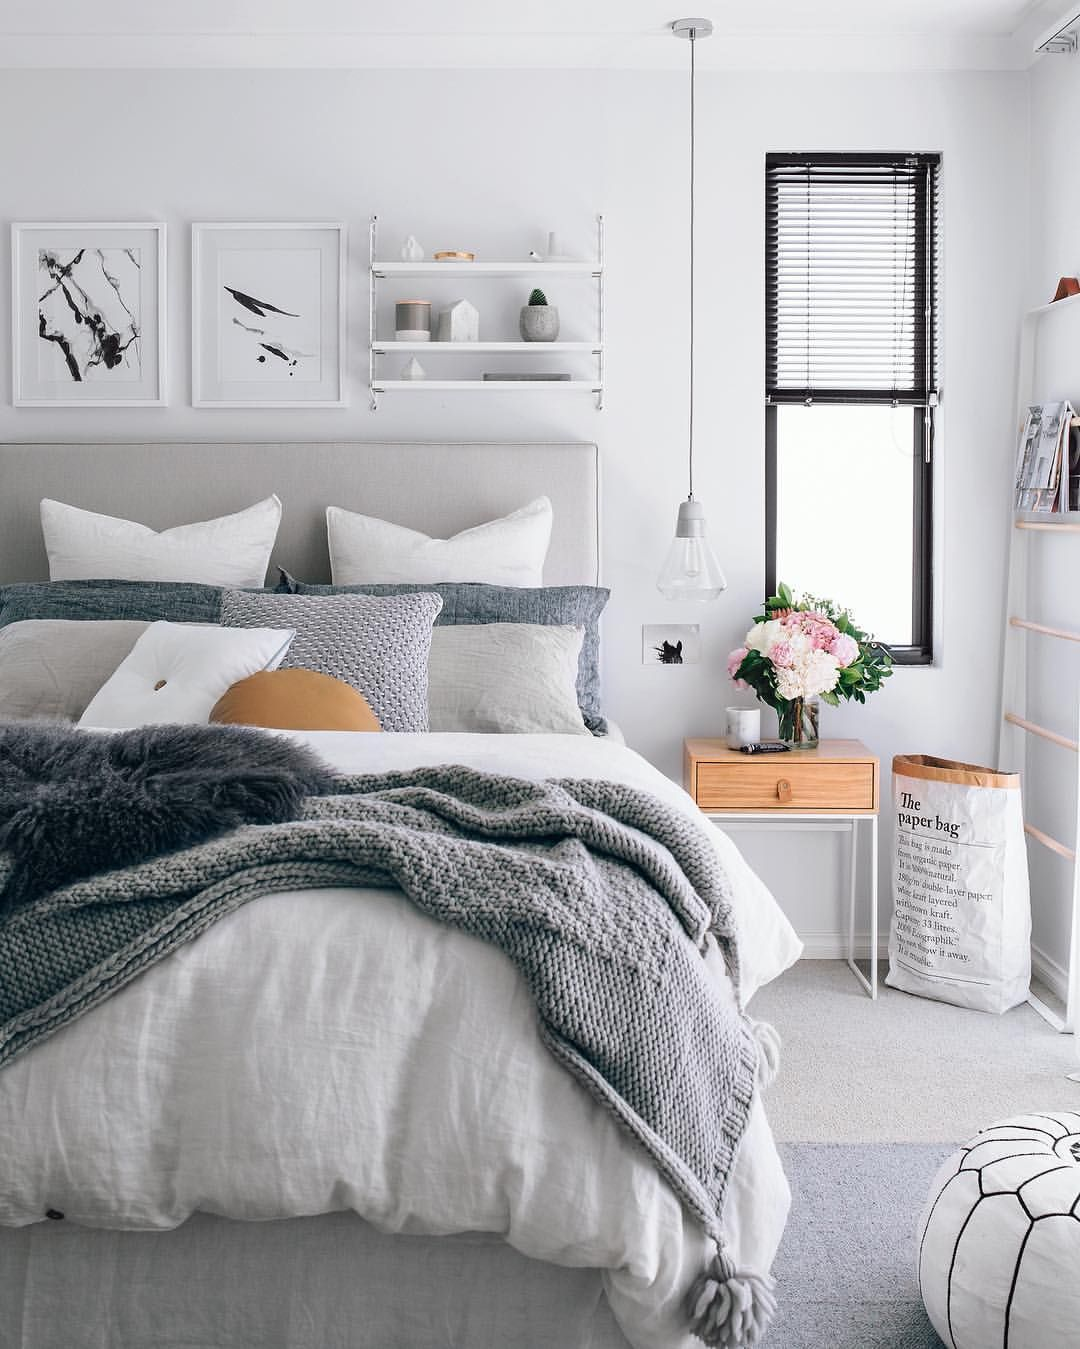 50 Sleigh Bed Inspirations For A Cozy Modern Bedroom: Pin By Lucy French On Dream Home